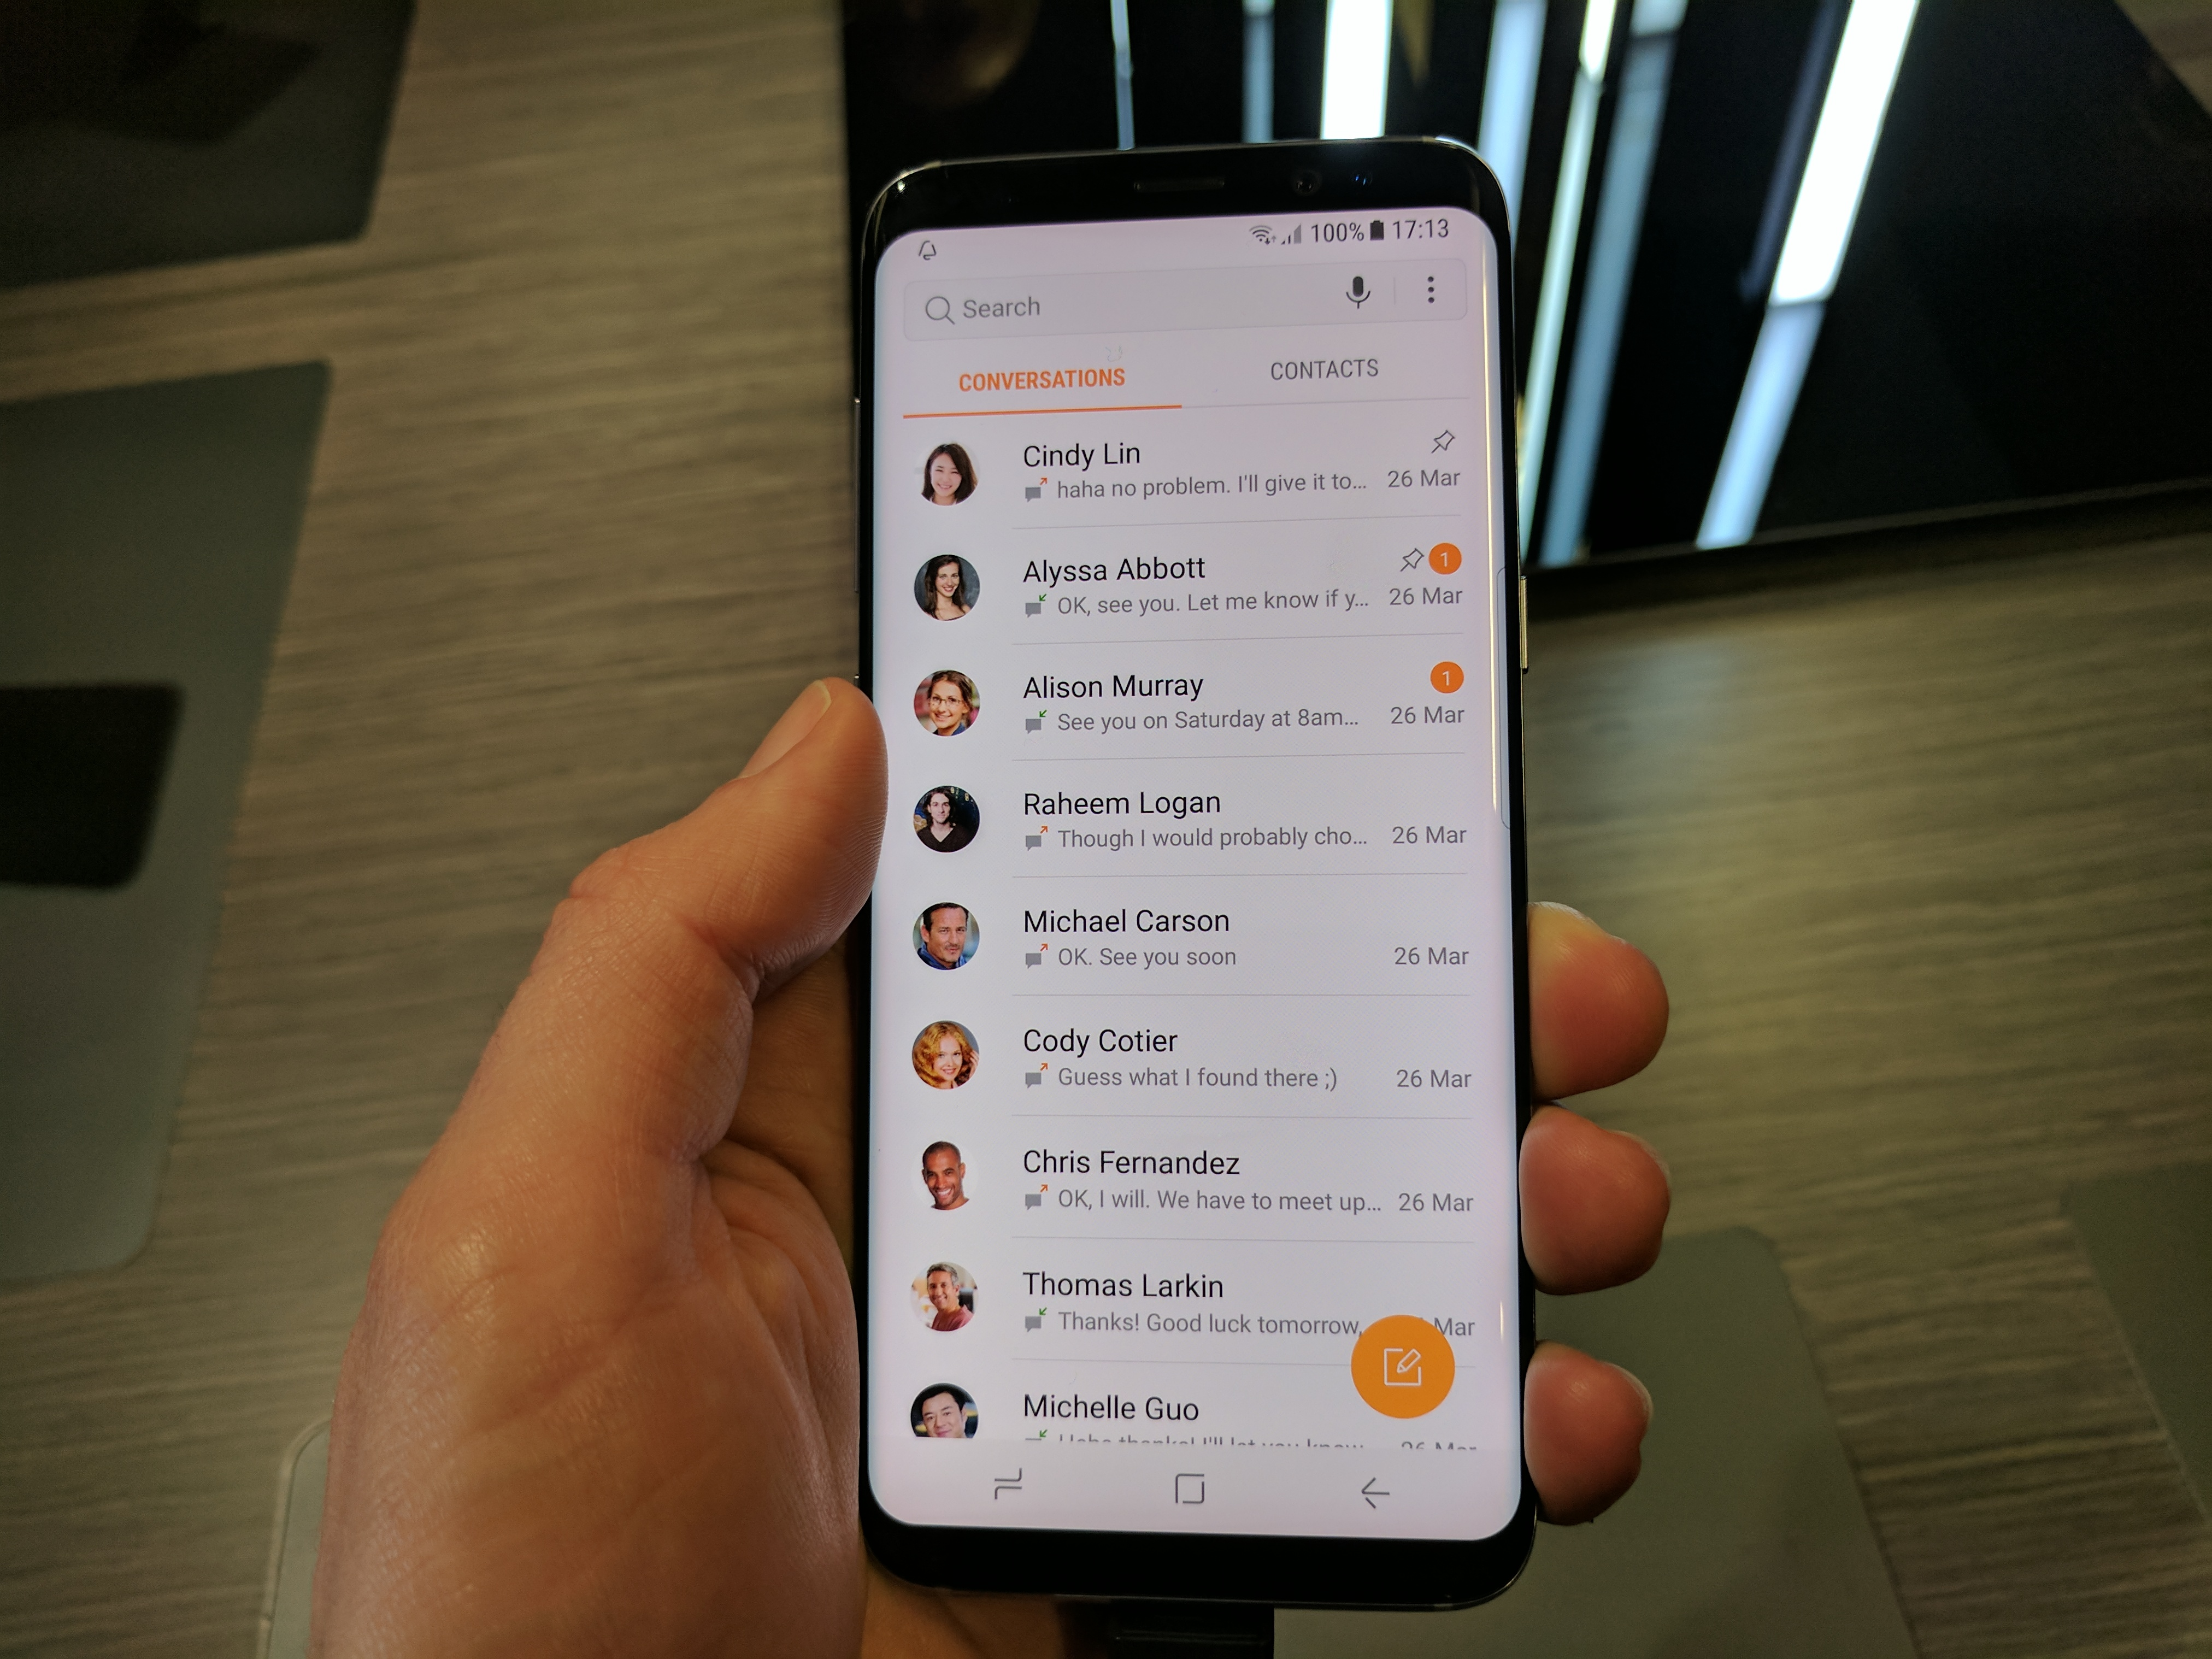 Samsung Galaxy S8 contacts